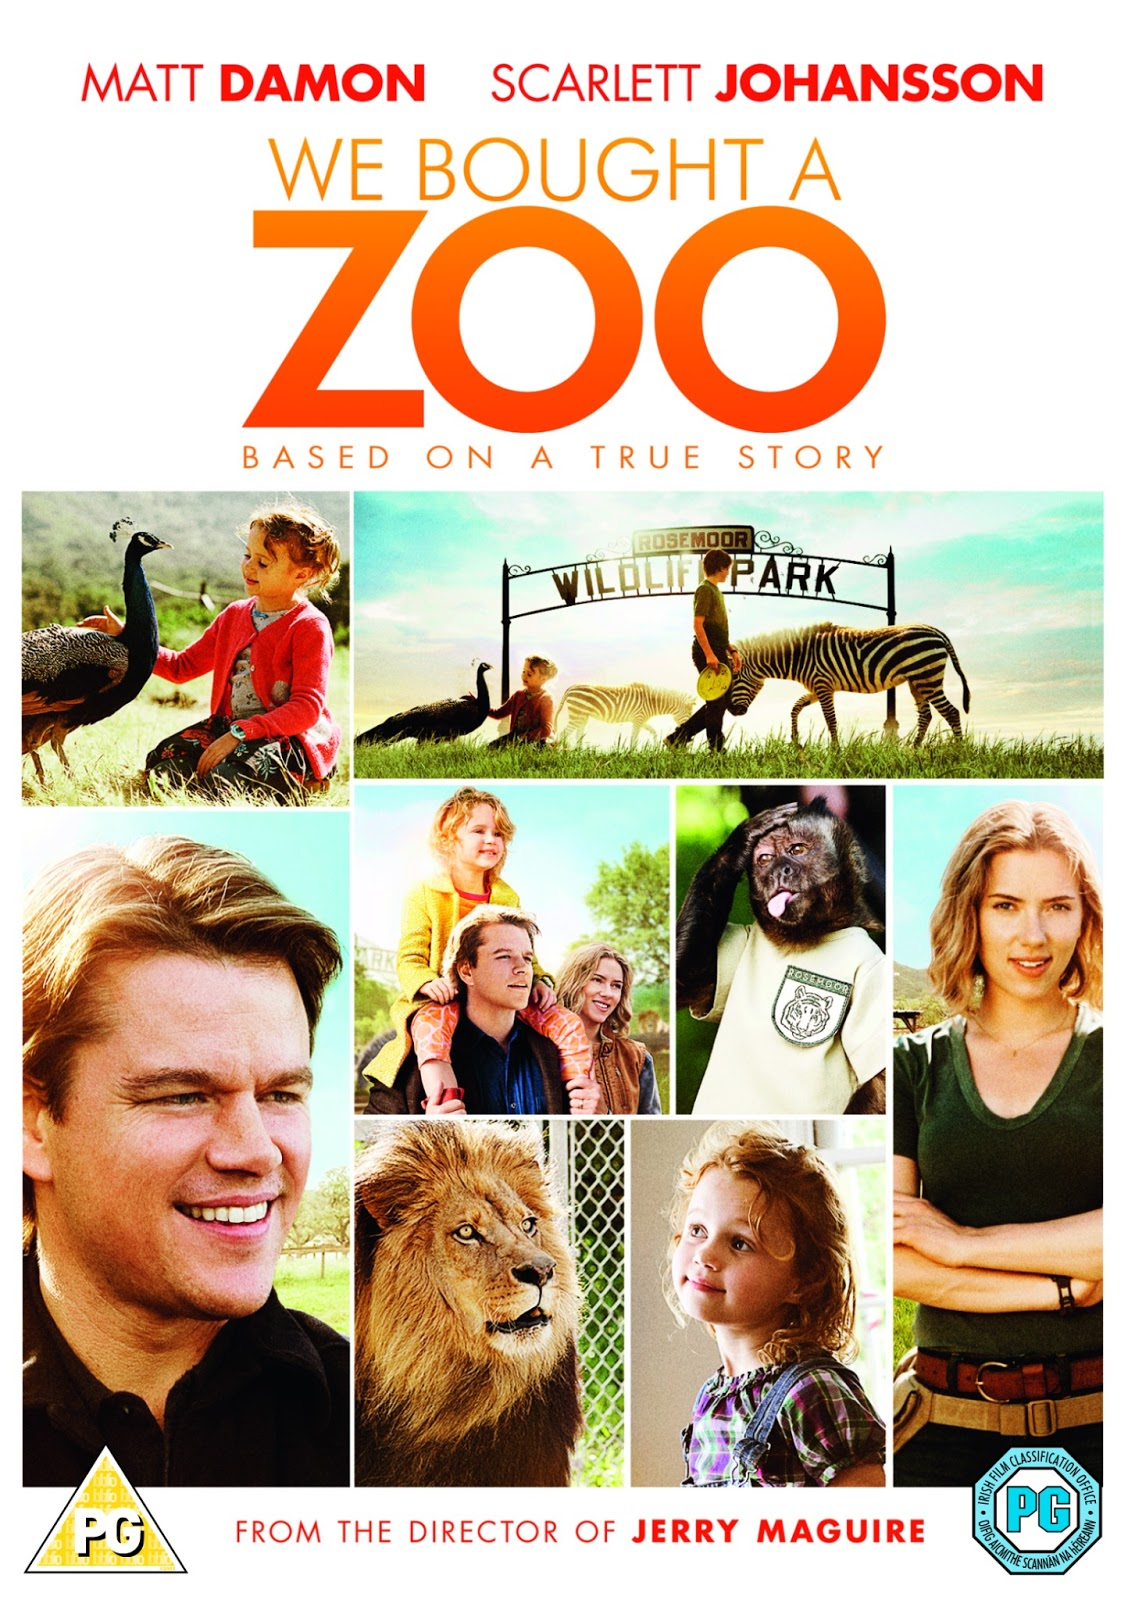 Edge Of The Plank: 'We Bought A Zoo' Film Review